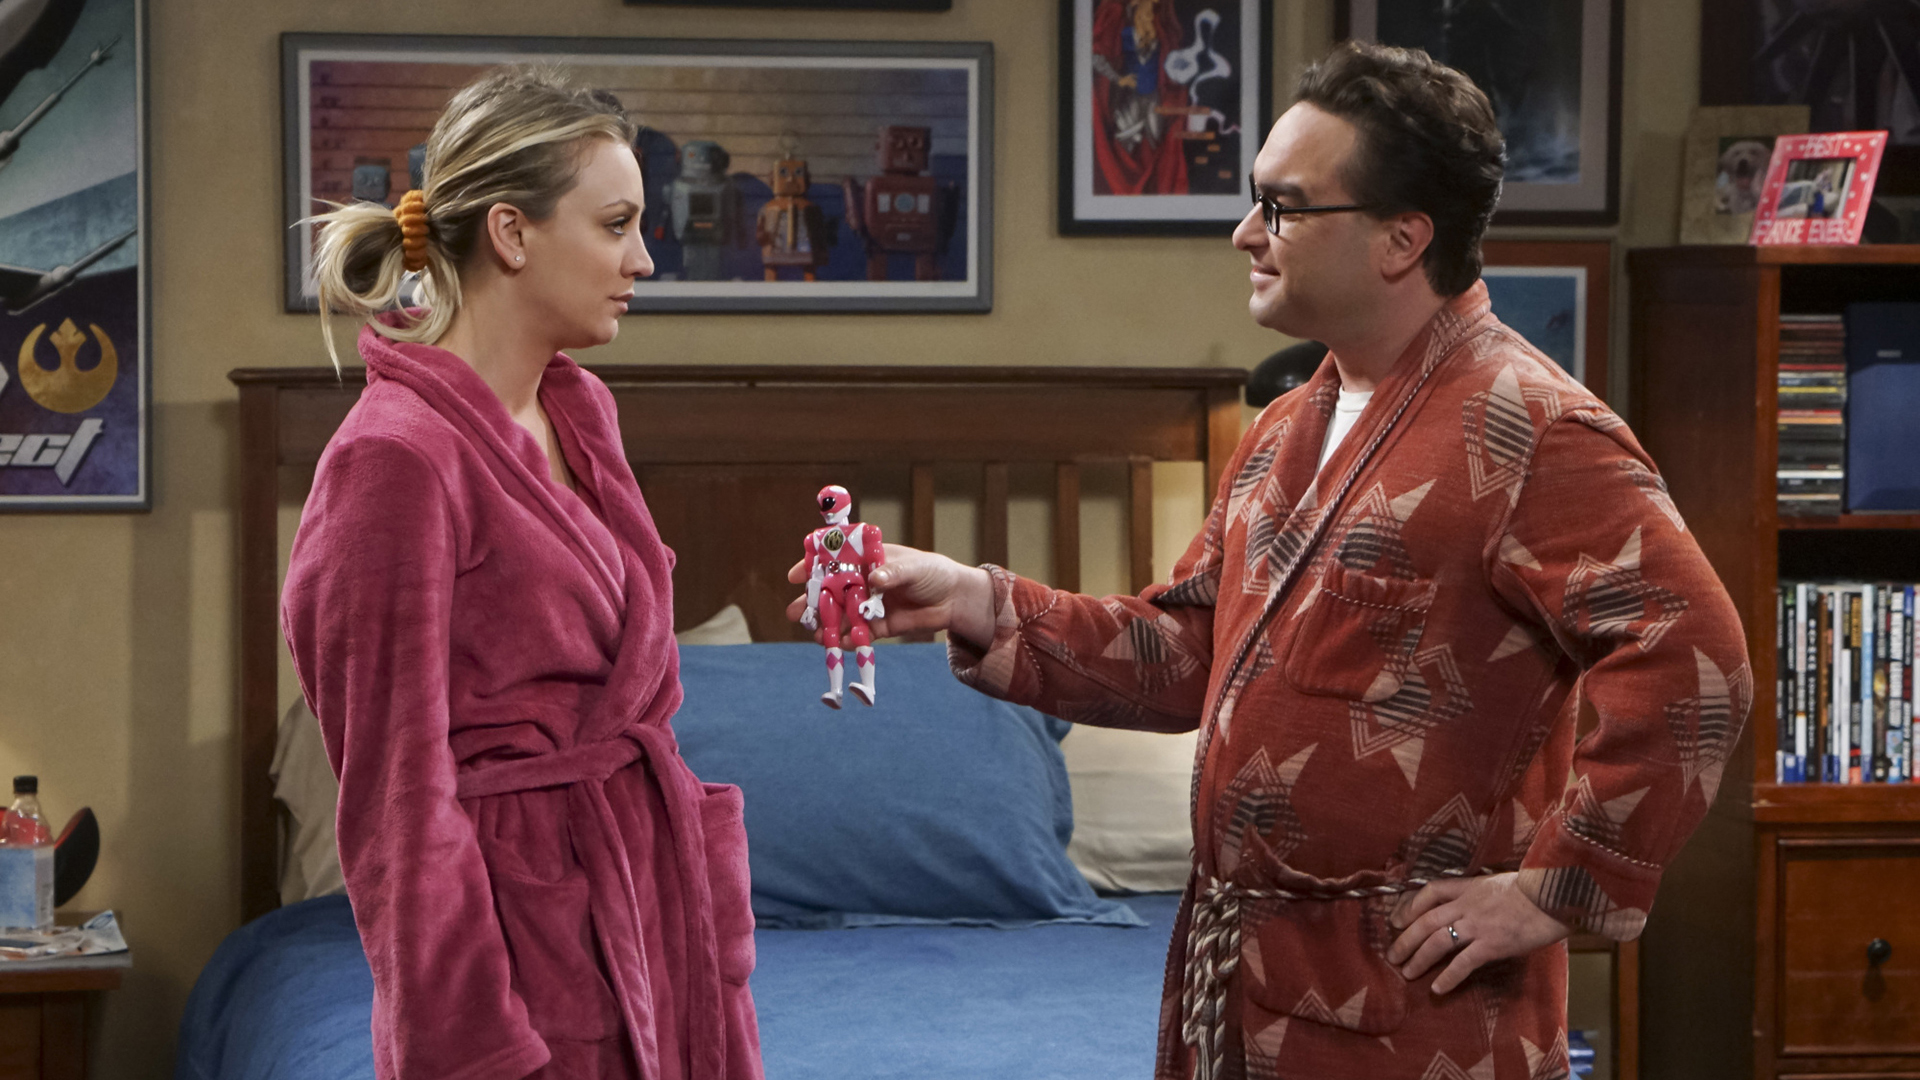 Leonard gifts Penny with her own action figure.